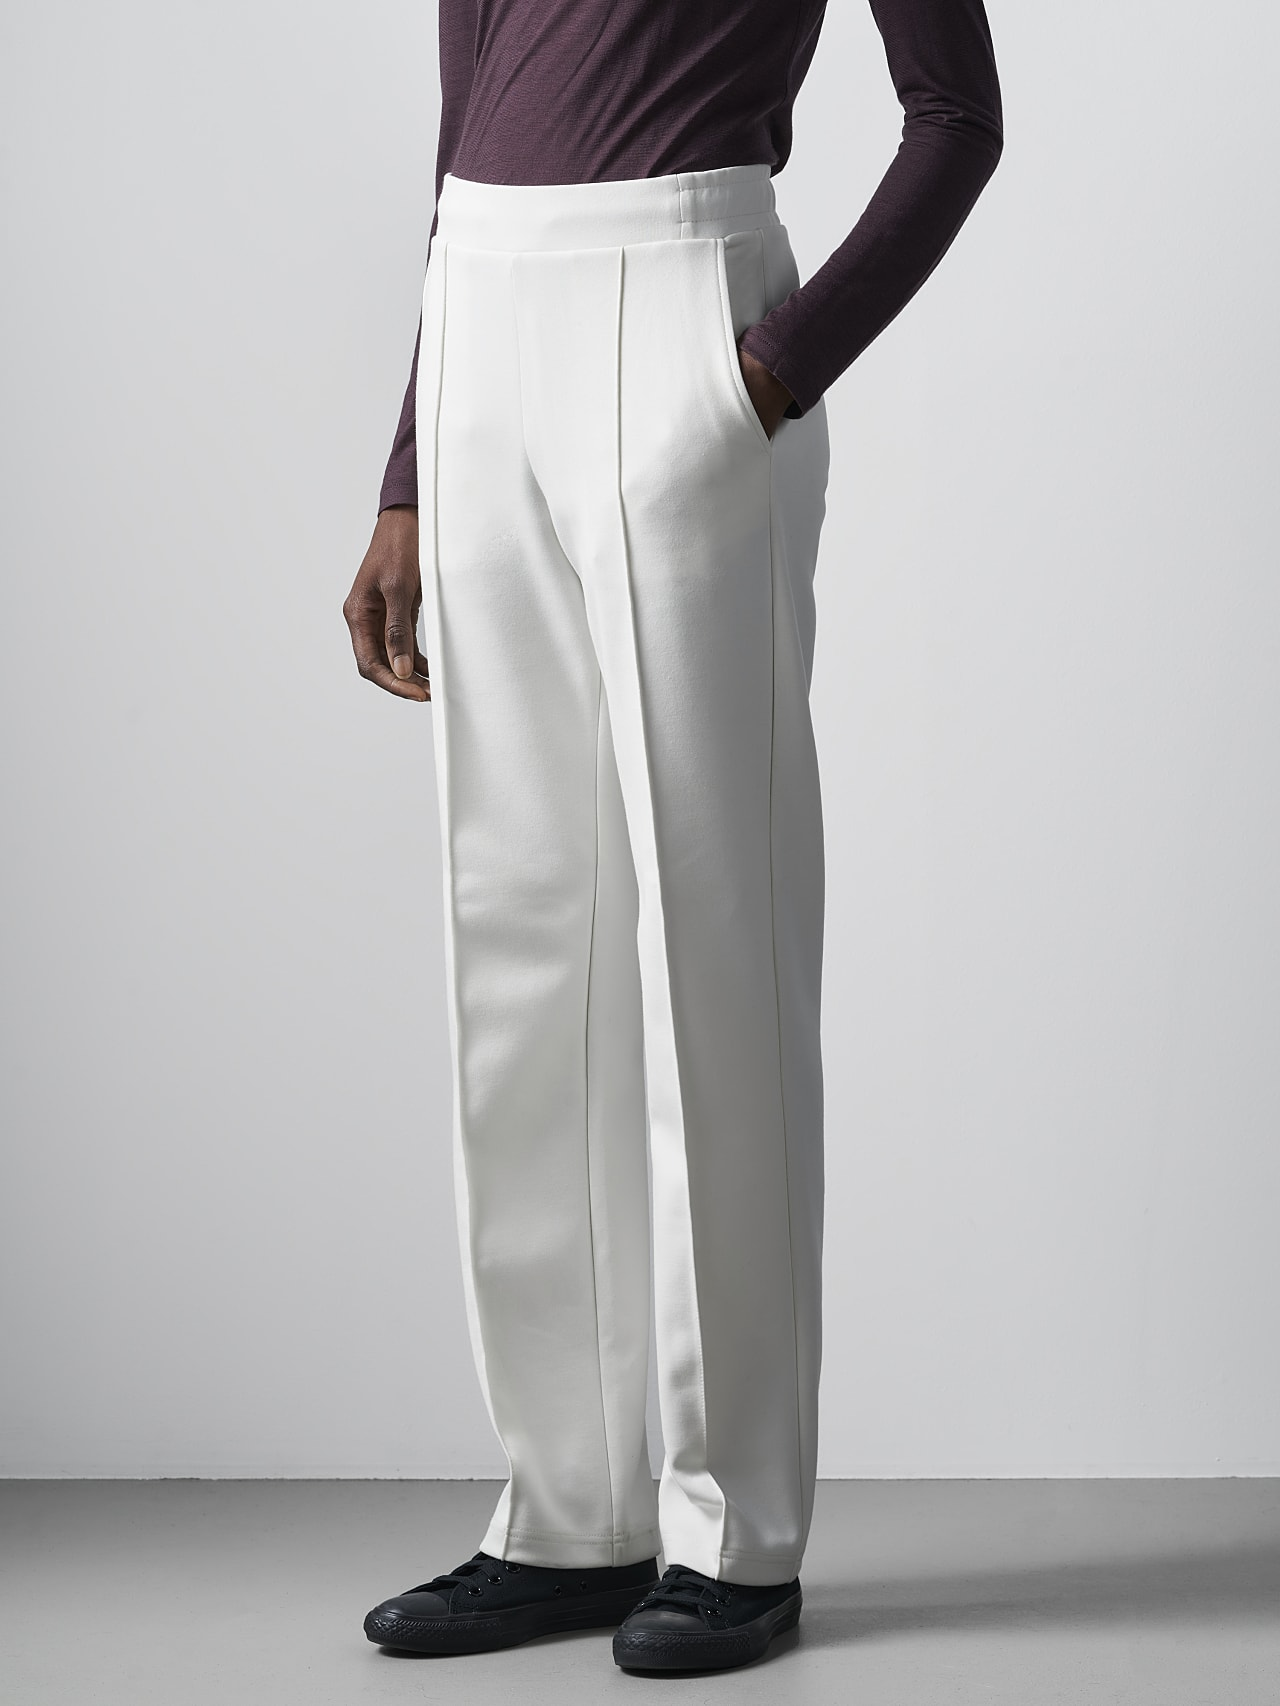 POVOA V1.Y5.02 Relaxed-Fit Premium Sweat Pants offwhite Right Alpha Tauri